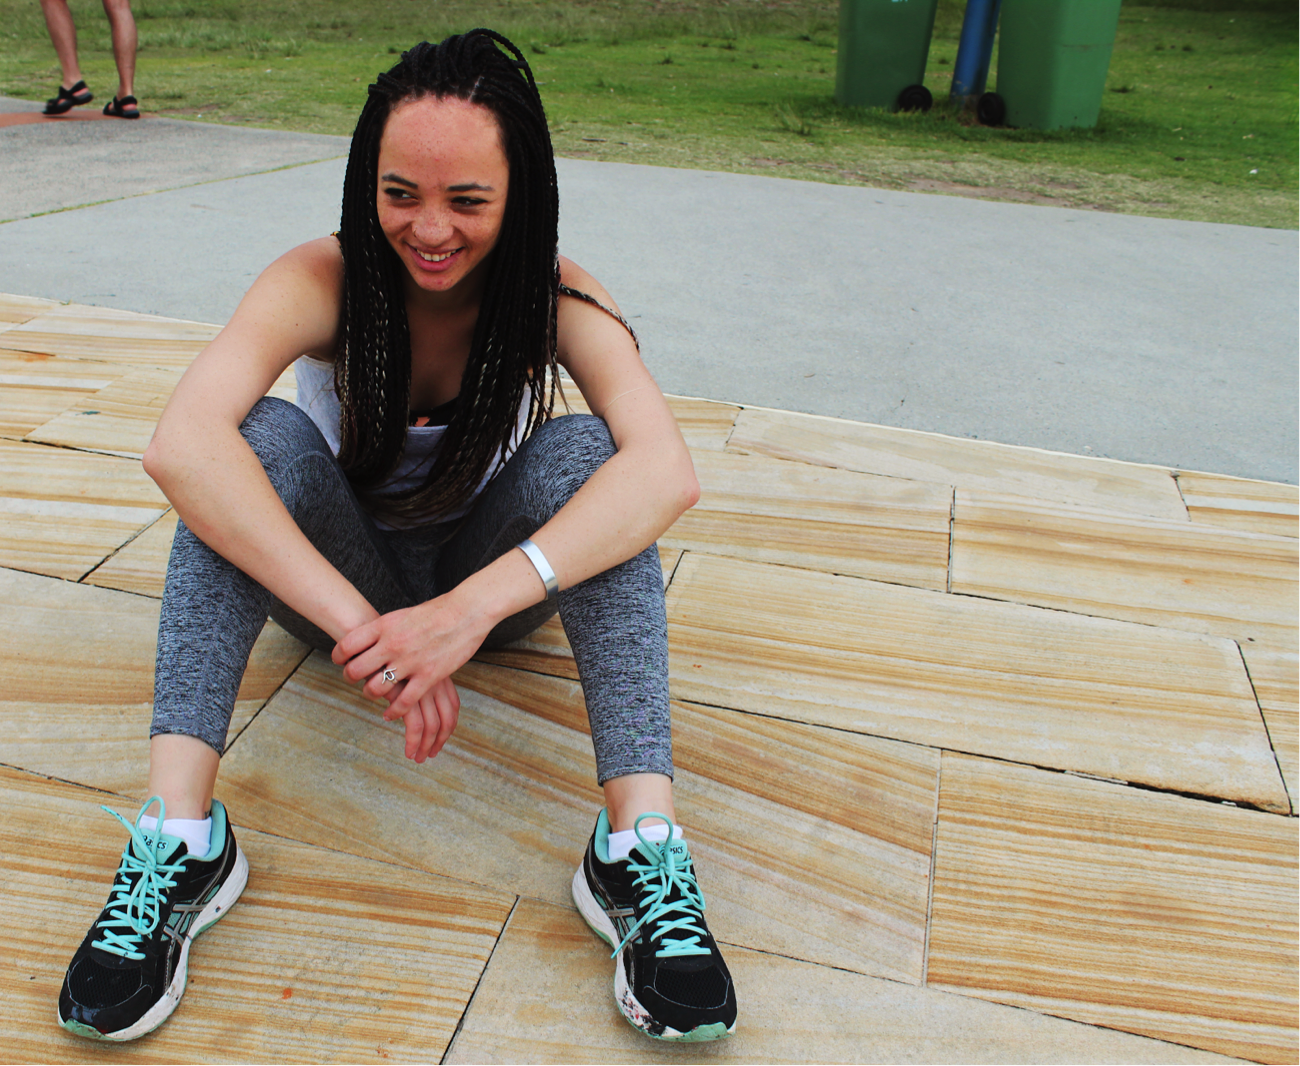 [image description: Ria is sitting on a sandstone pavement with her knees bent. Her arms are placed casually over her knees and she is smiling and looking away from the camera].